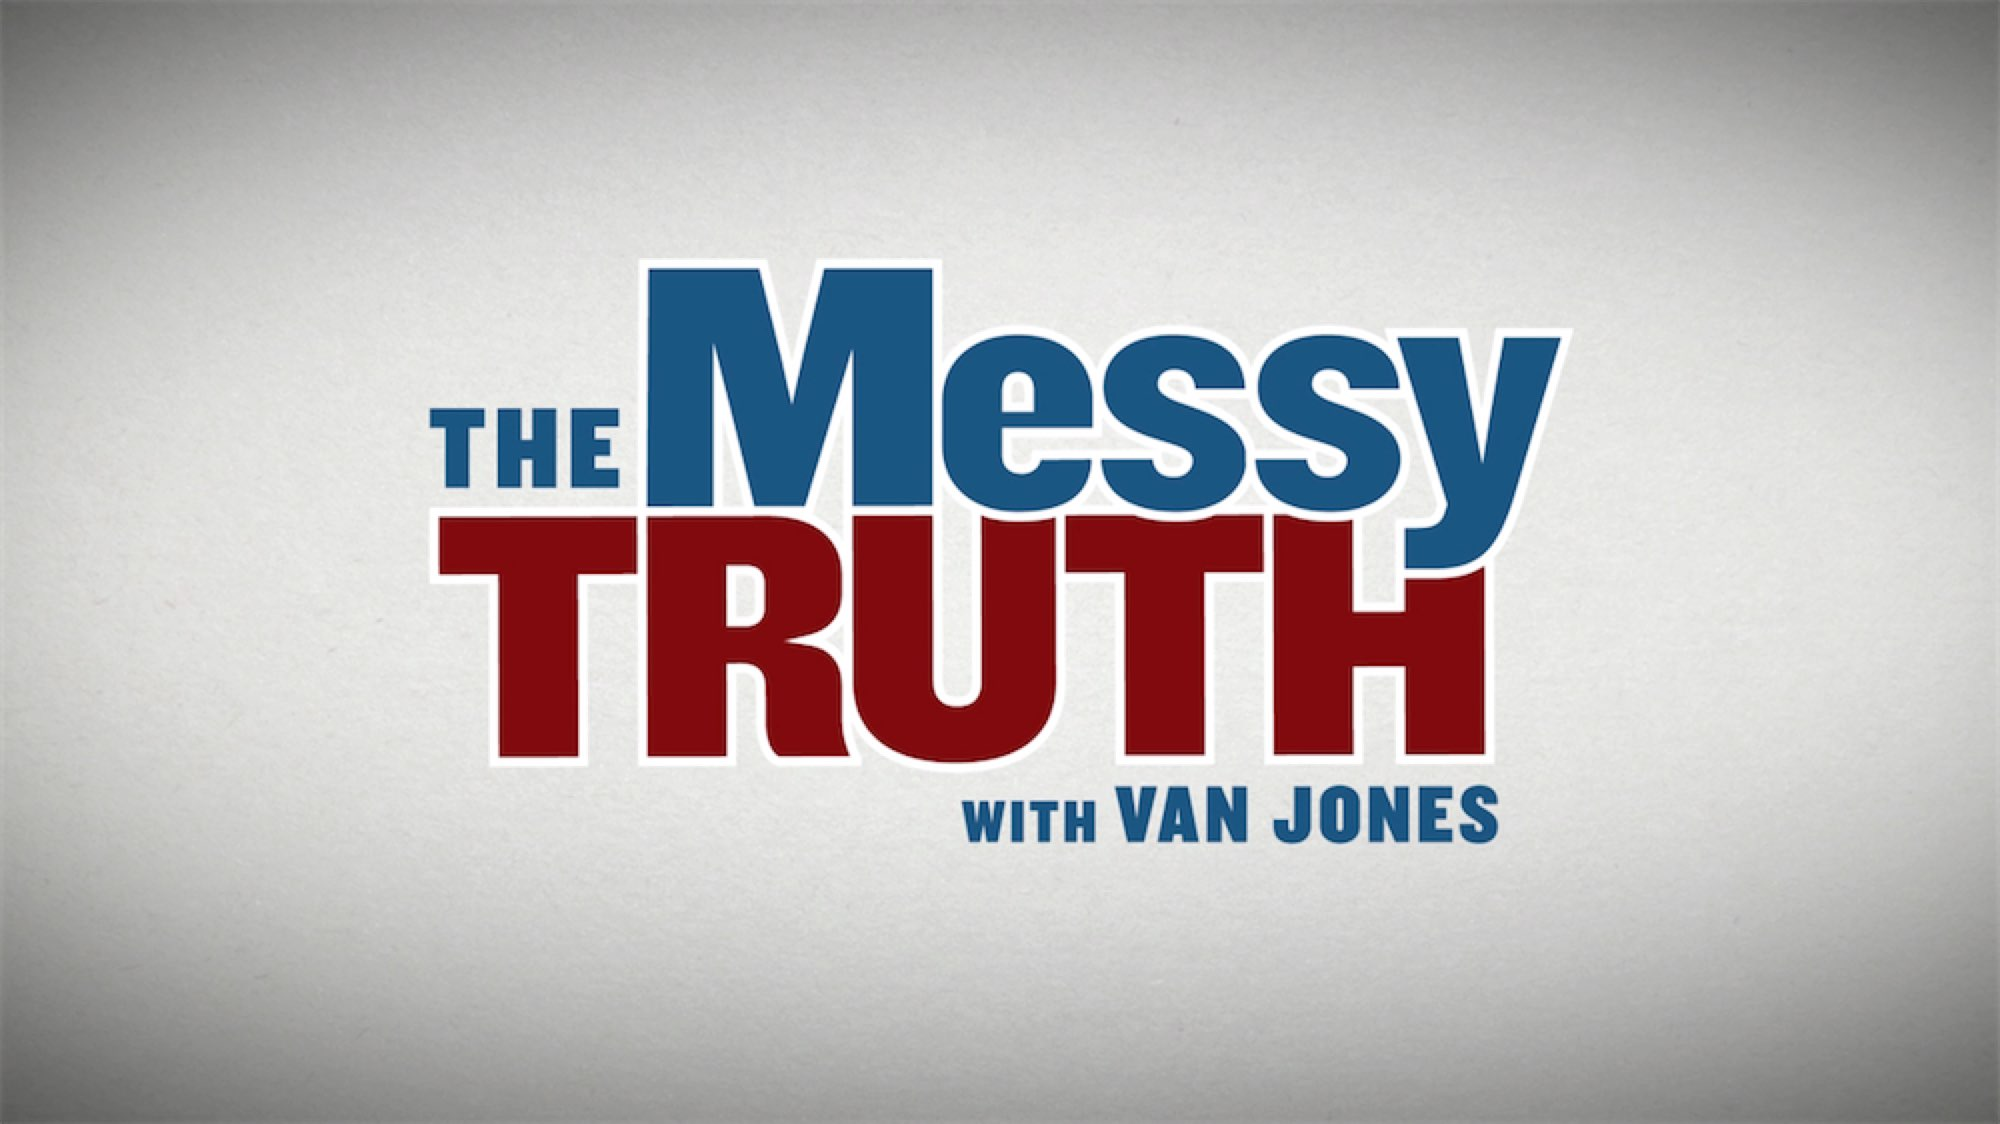 The Messy Truth is a three part digital web series following Van Jones as he visits Gettysburg, PA days before the election to hold honest, emotional and sometimes painful conversations with Trump supporters, Clinton supporters and undecided voters.